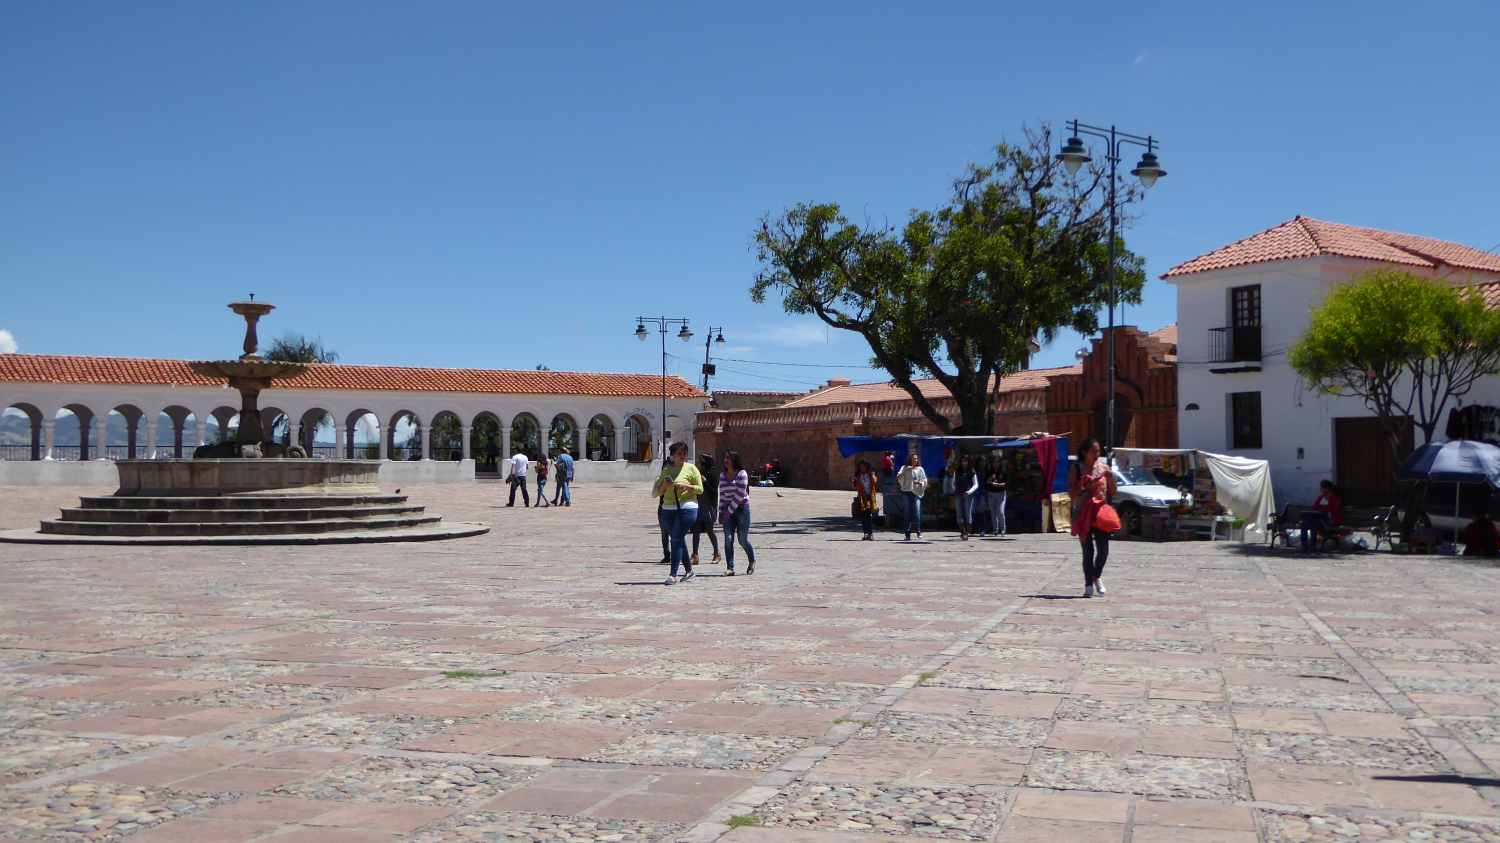 Squares in Sucre